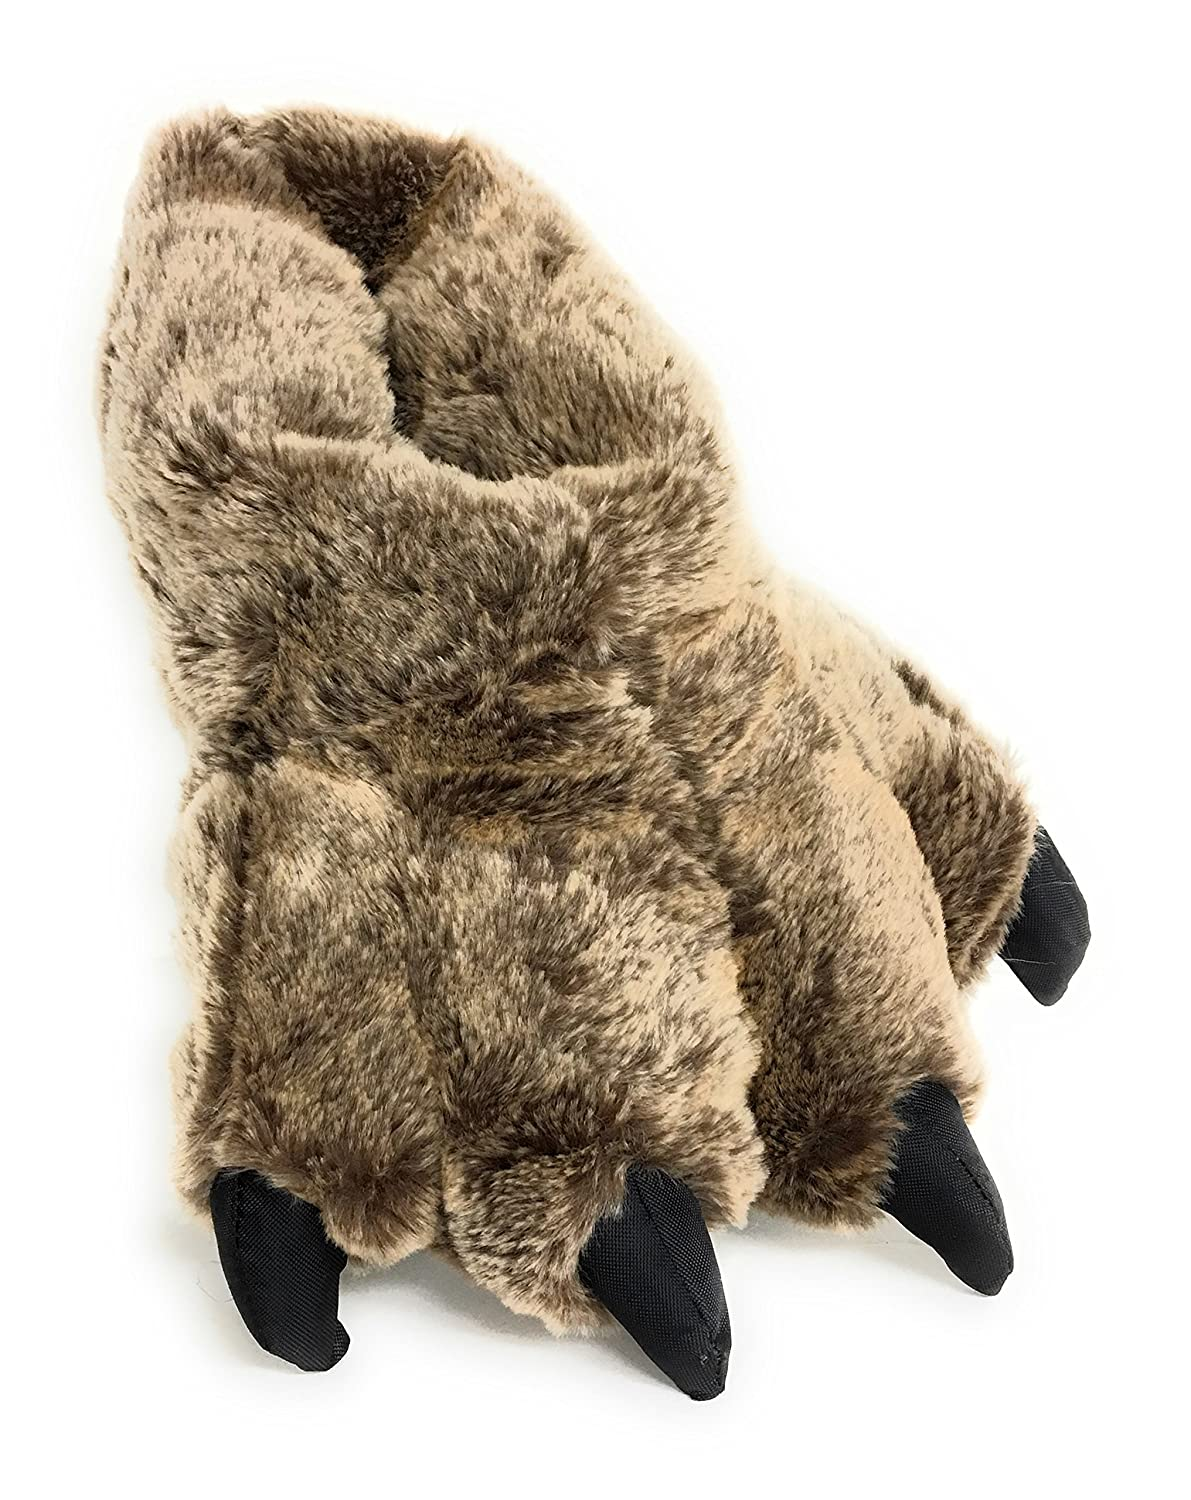 Brown Timber Wolf Sundial Wild Ones Furry Animal Claw Slippers for Toddlers, Kids and Adults